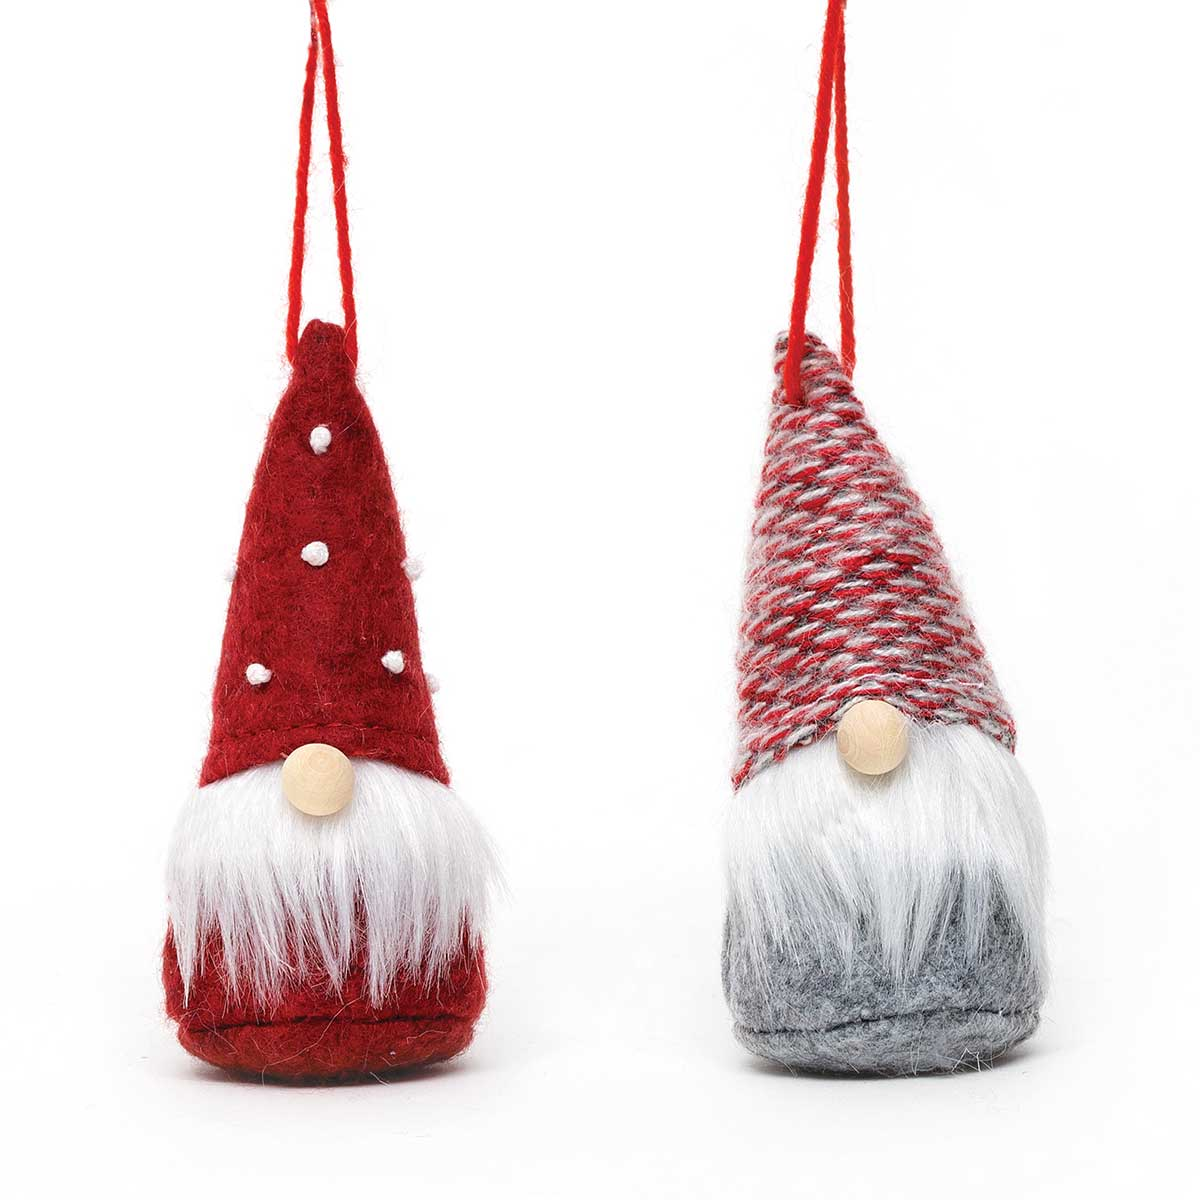 RED GNOME ORNAMENT WITH WOOD NOSE